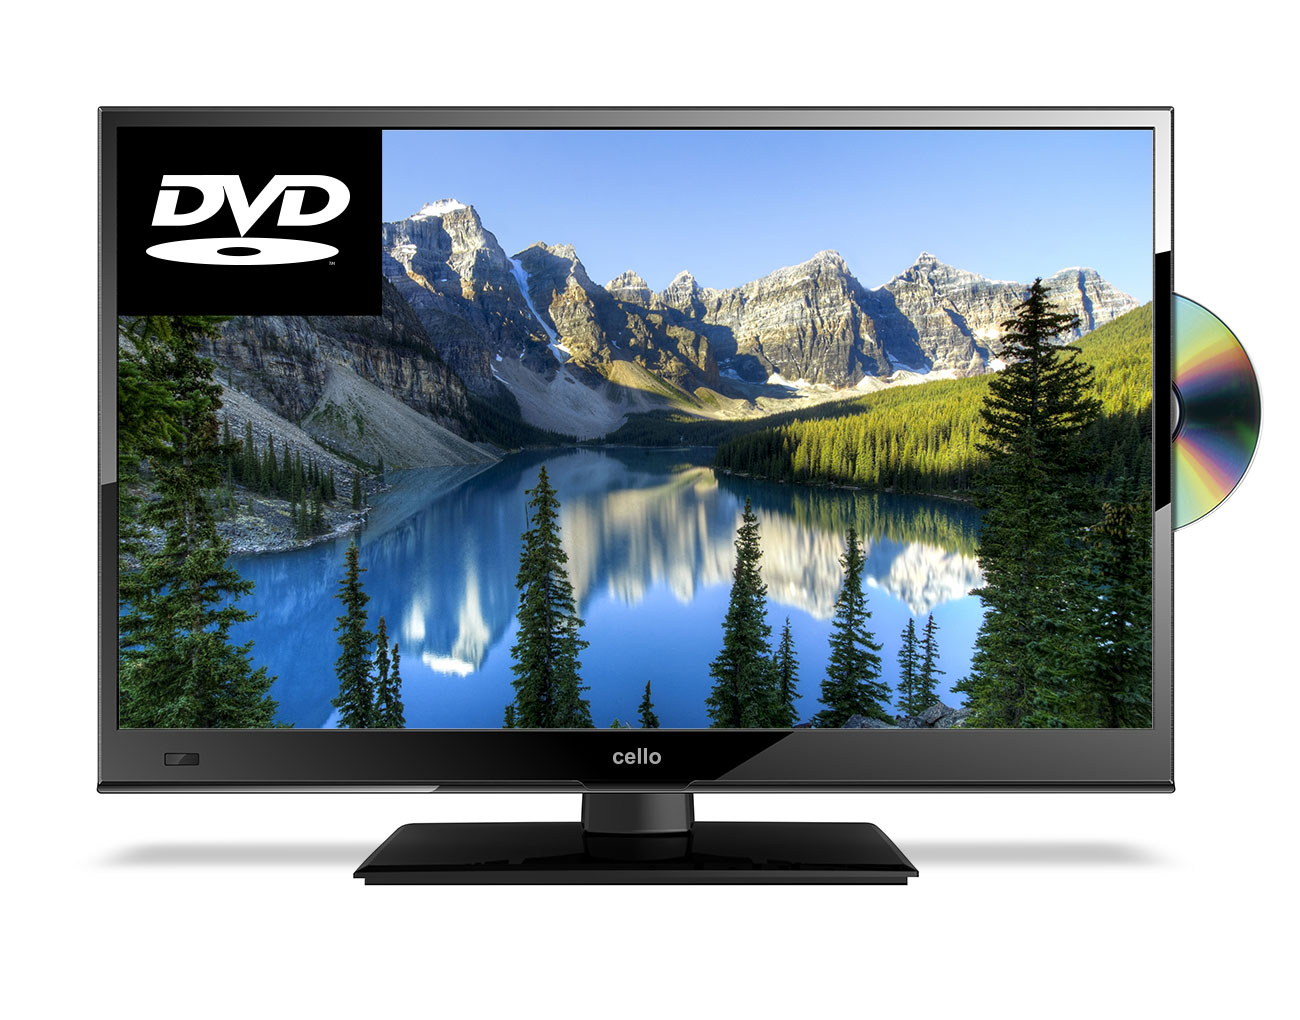 16 Full Hd Led Digital Tv With Built In Dvd Player Freeview T2